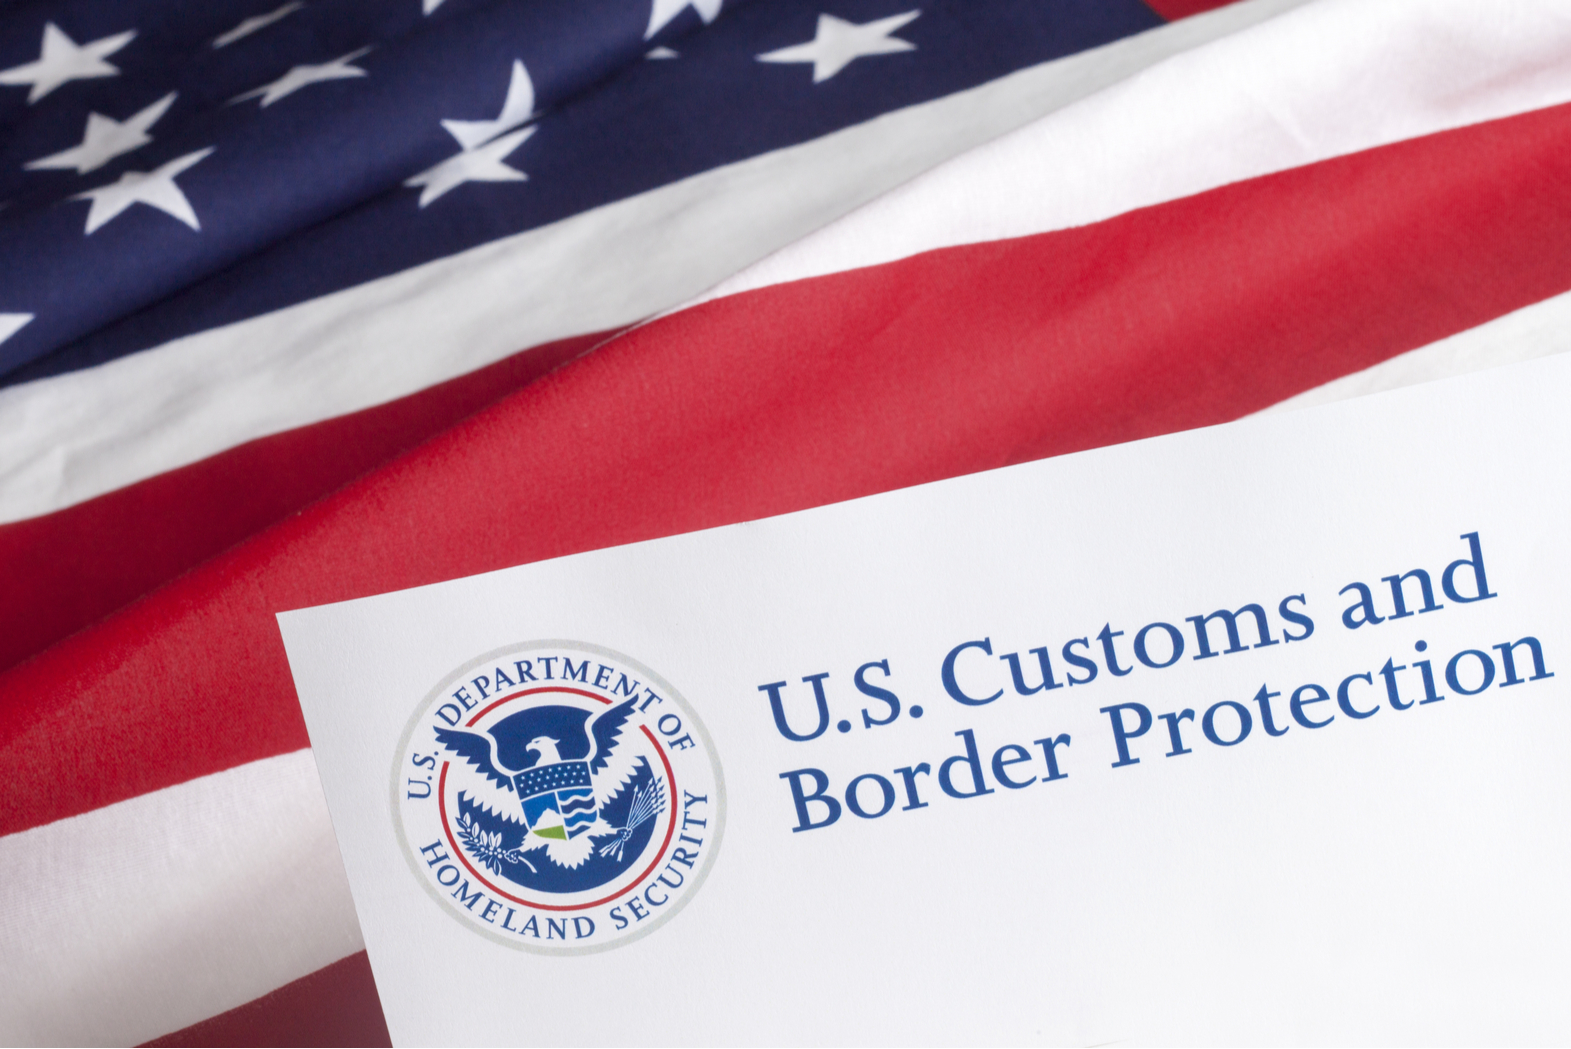 Customs and Border Protection breach shows need to monitor contractor cybersecurity